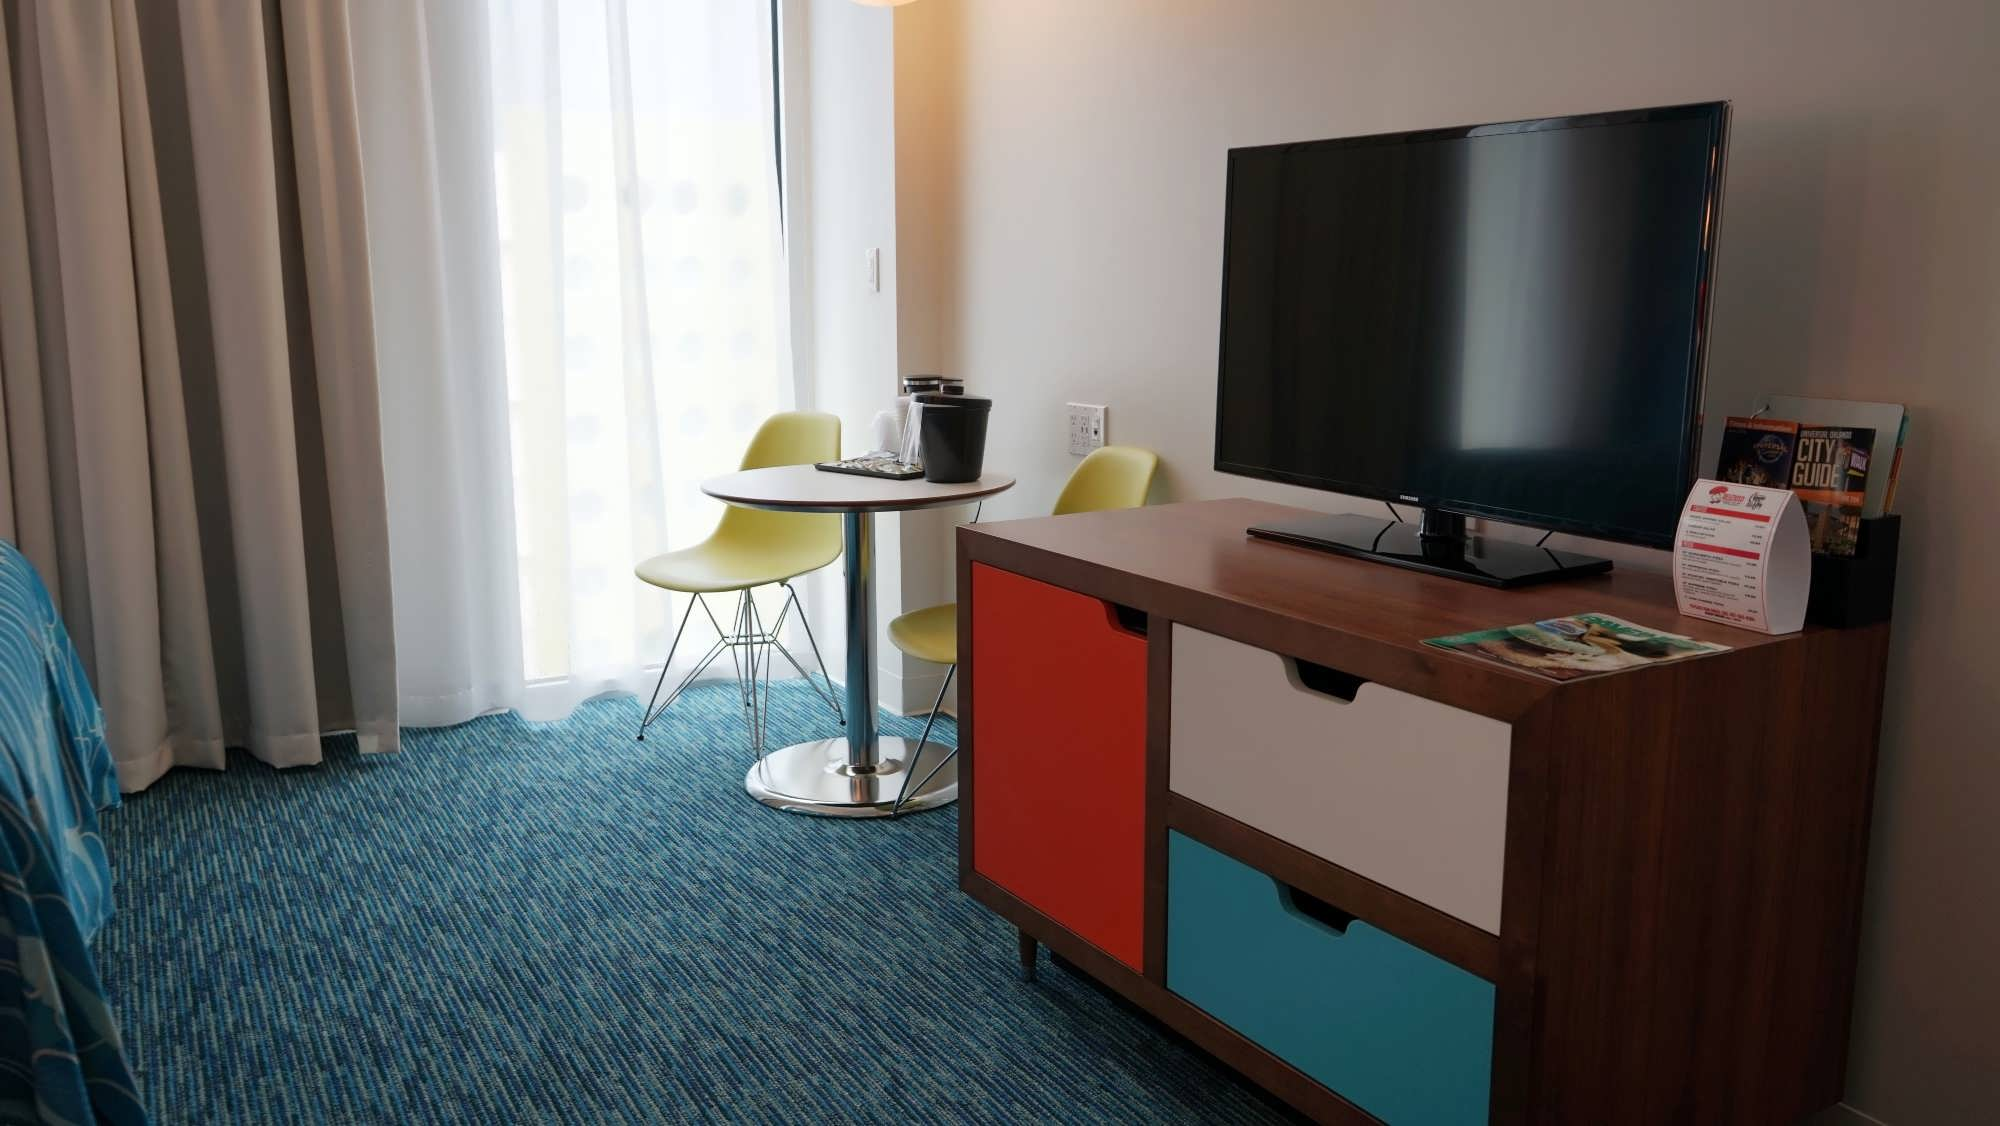 Standard room at Cabana Bay Beach Resort.